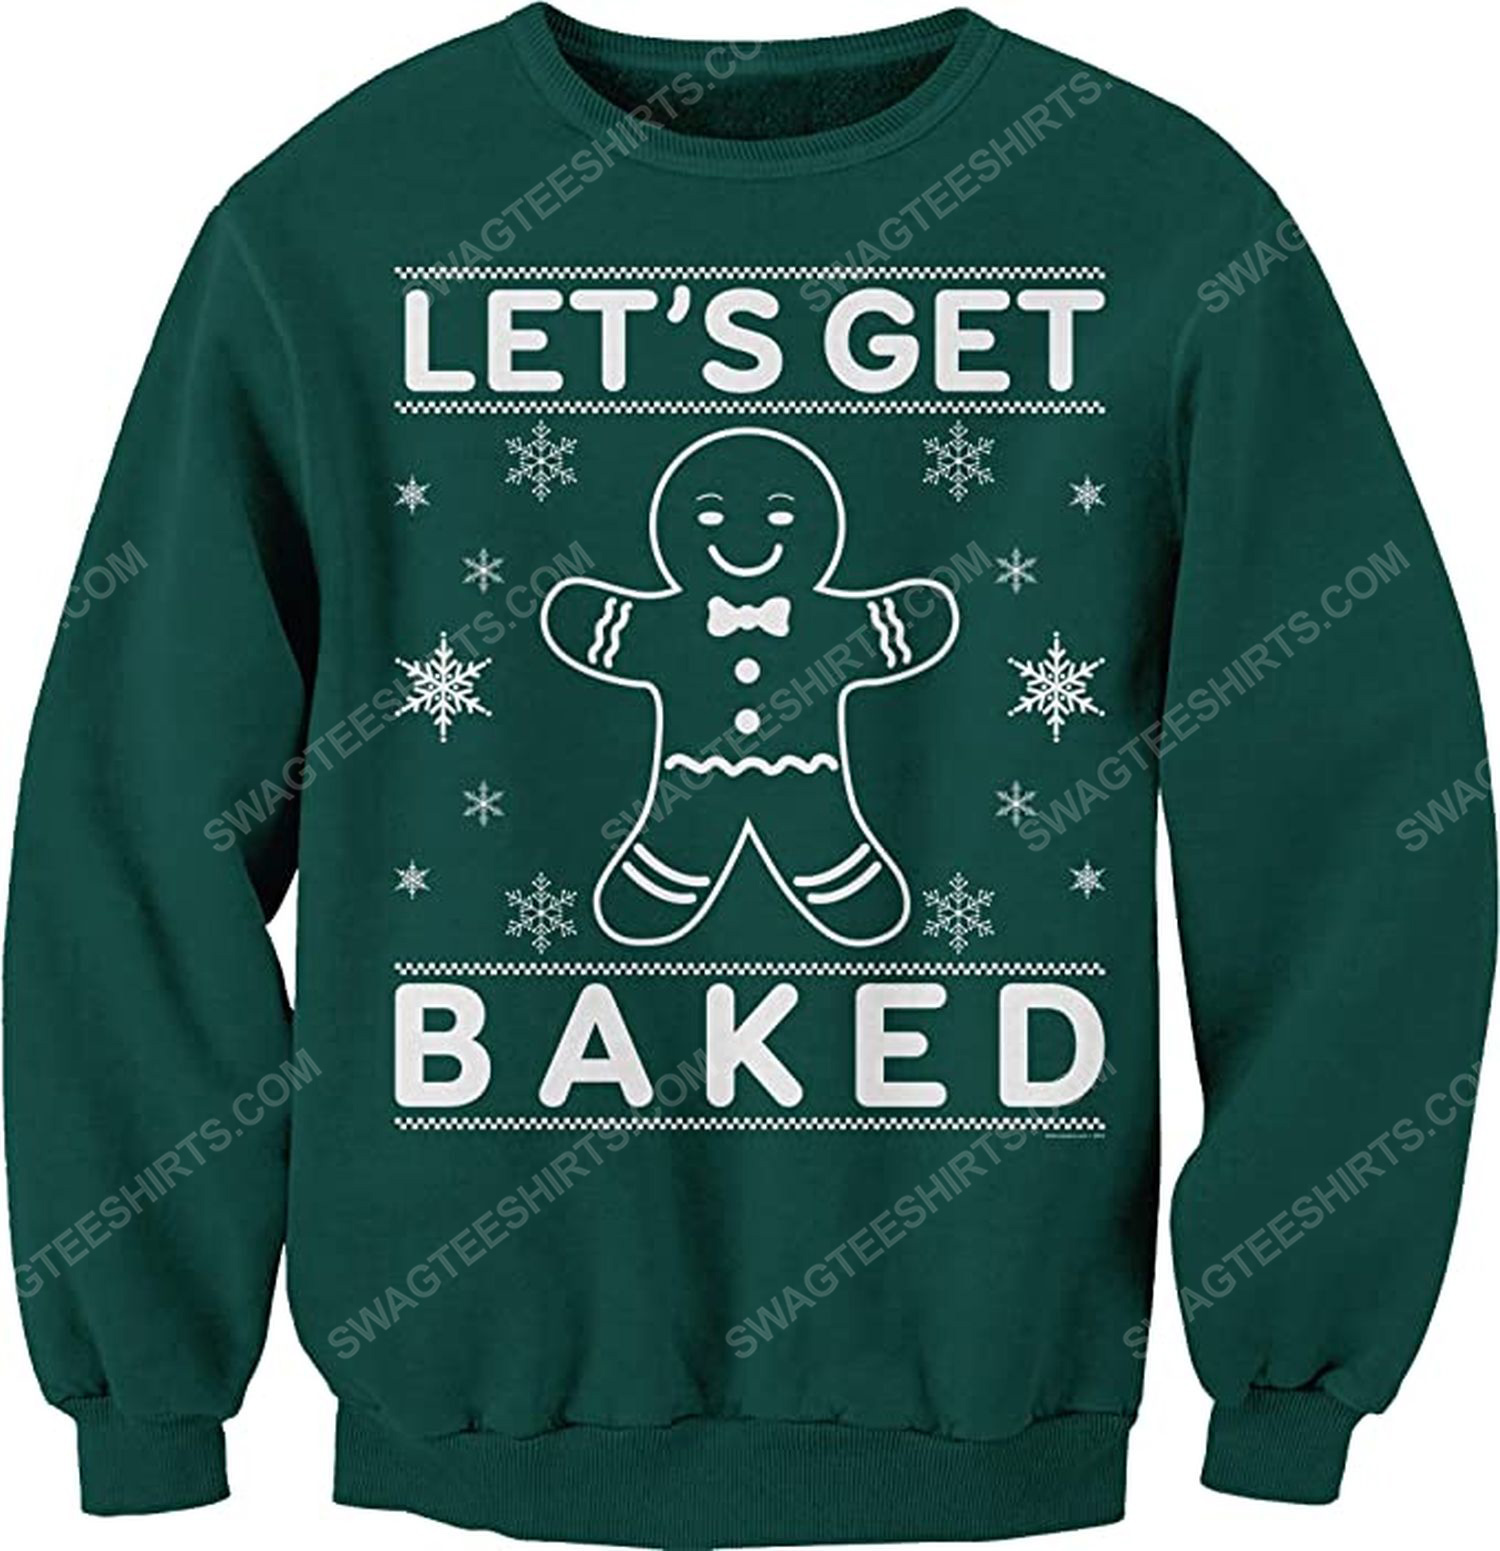 Let's get baked happy gingerbread full print ugly christmas sweater 2 - Copy (2)